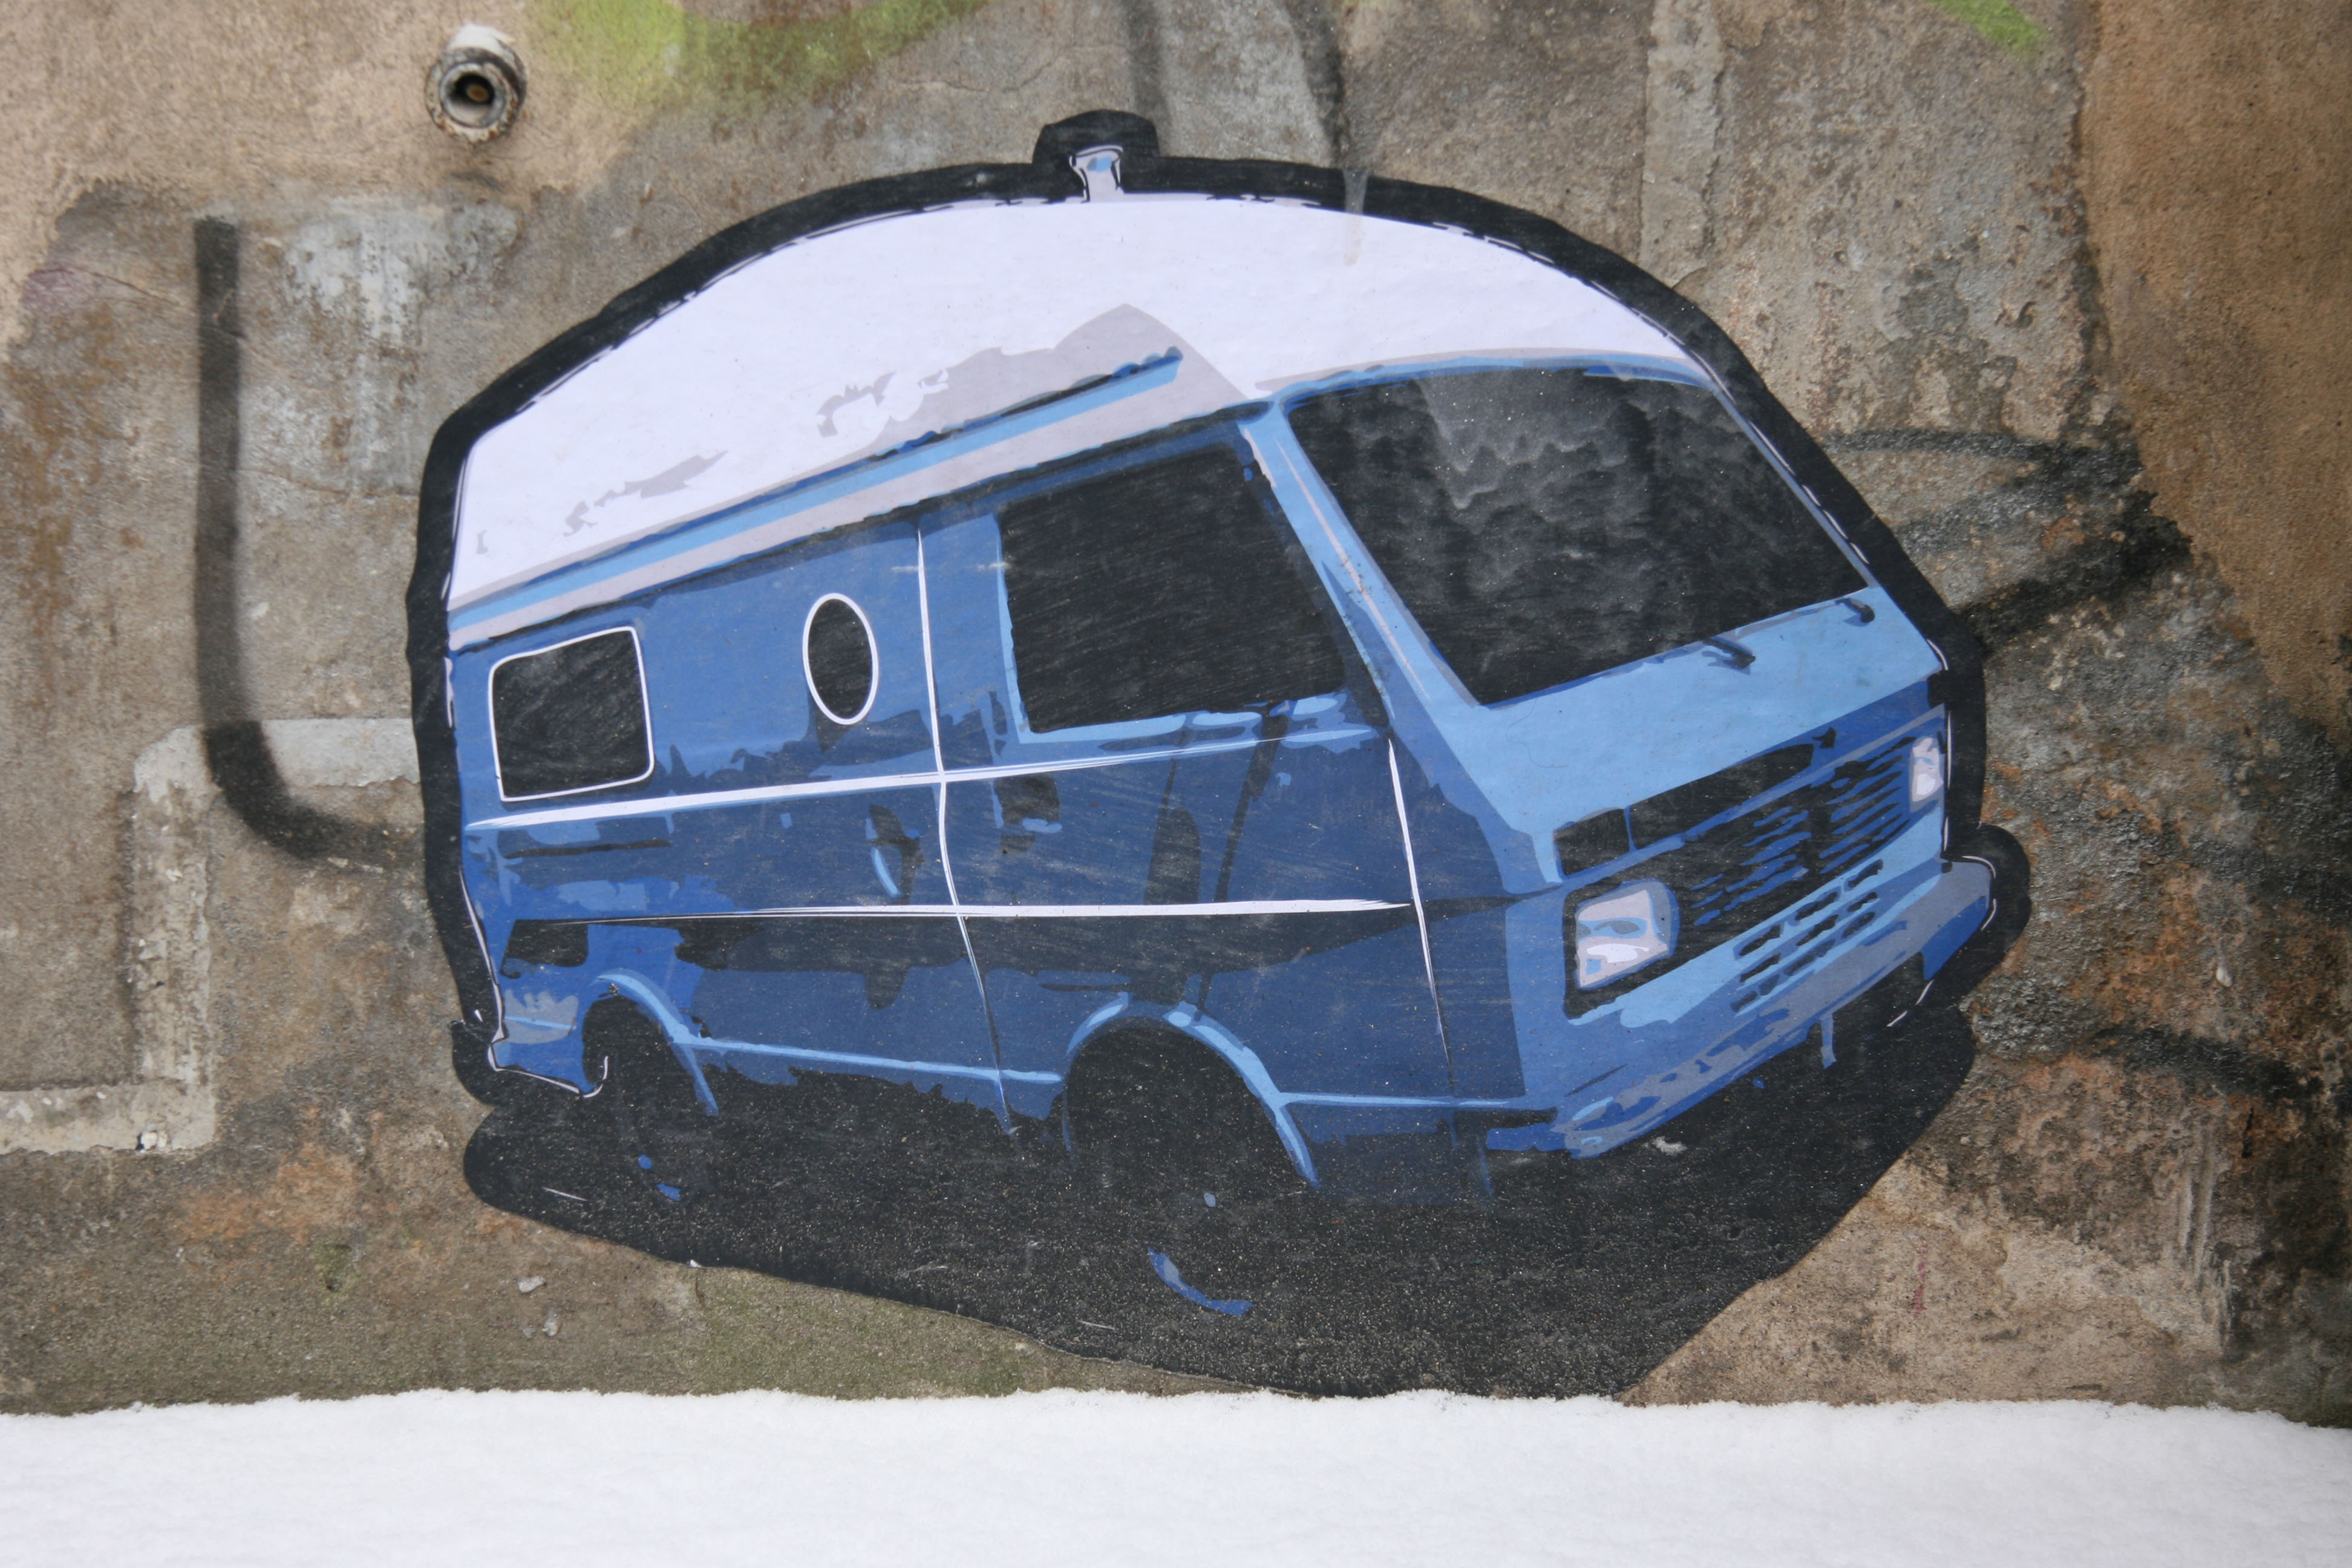 Camper Van: Street Art by Unknown Artist in Berlin